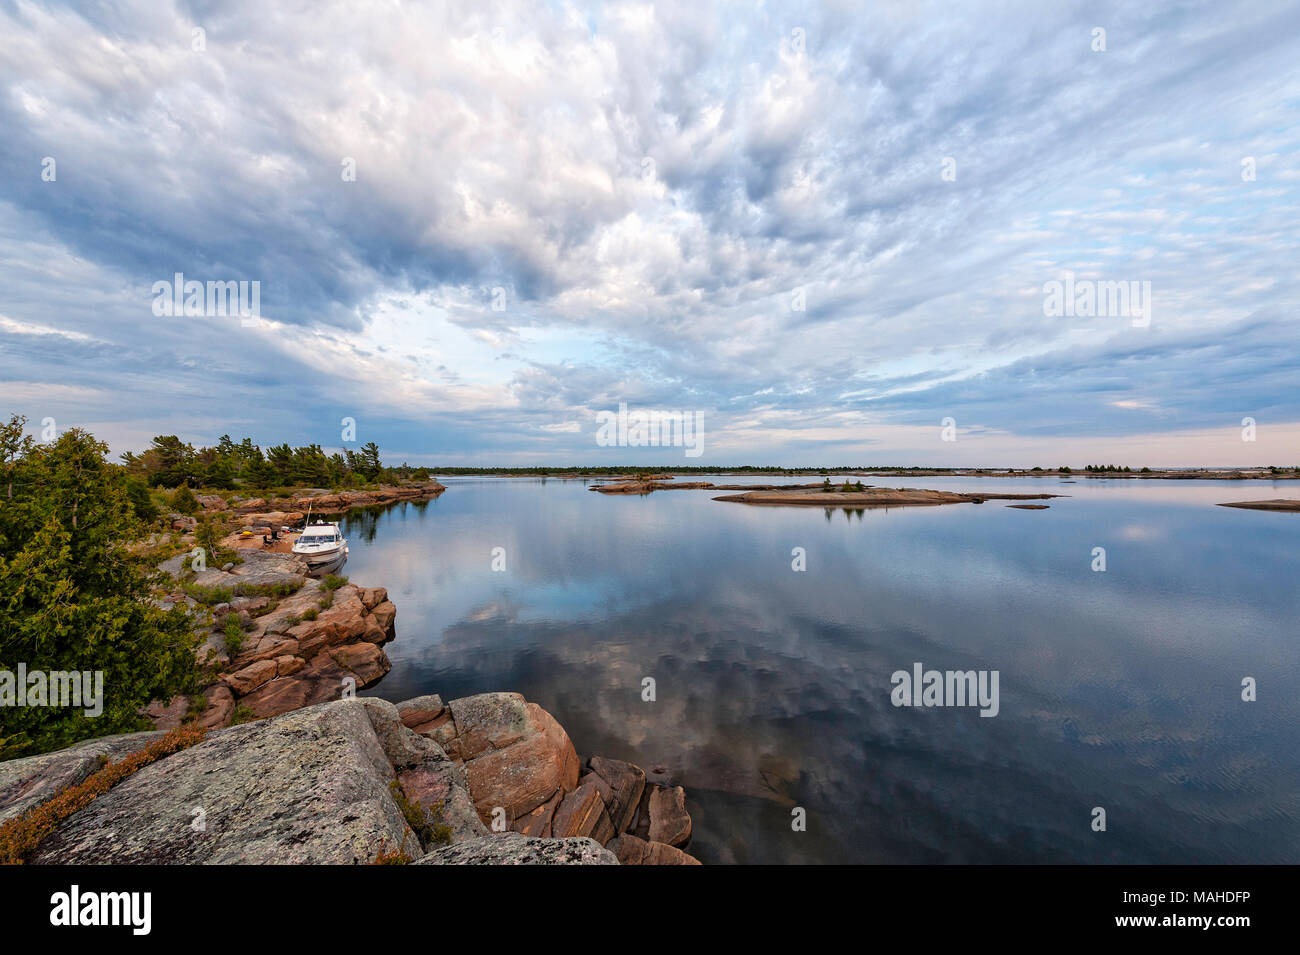 A boat tied to shore on a calm evening in Georgian Bay - Stock Image